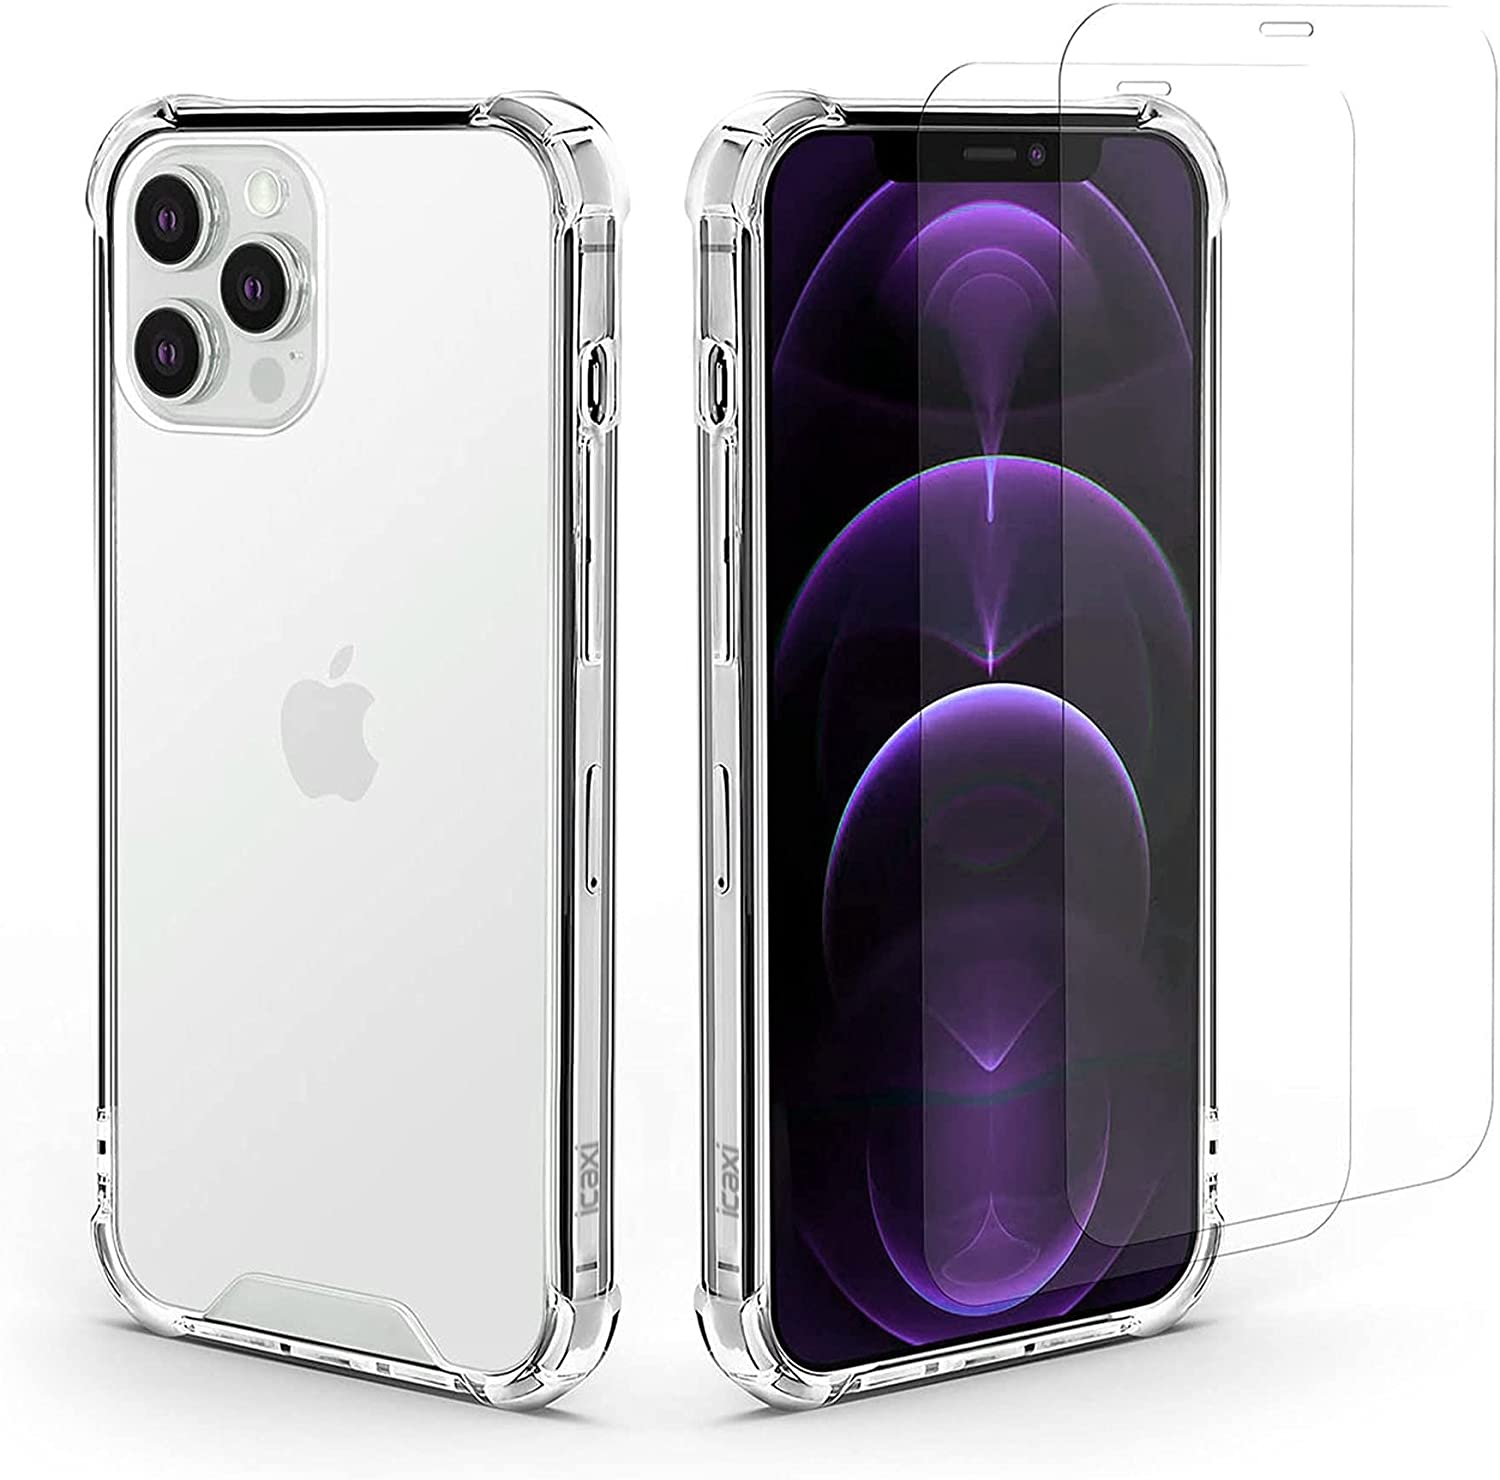 Icaxi - iPhone 12 Pro Case, Durable 12 Pro Case with Screen Protectors and Screen Protection Kit, Clear